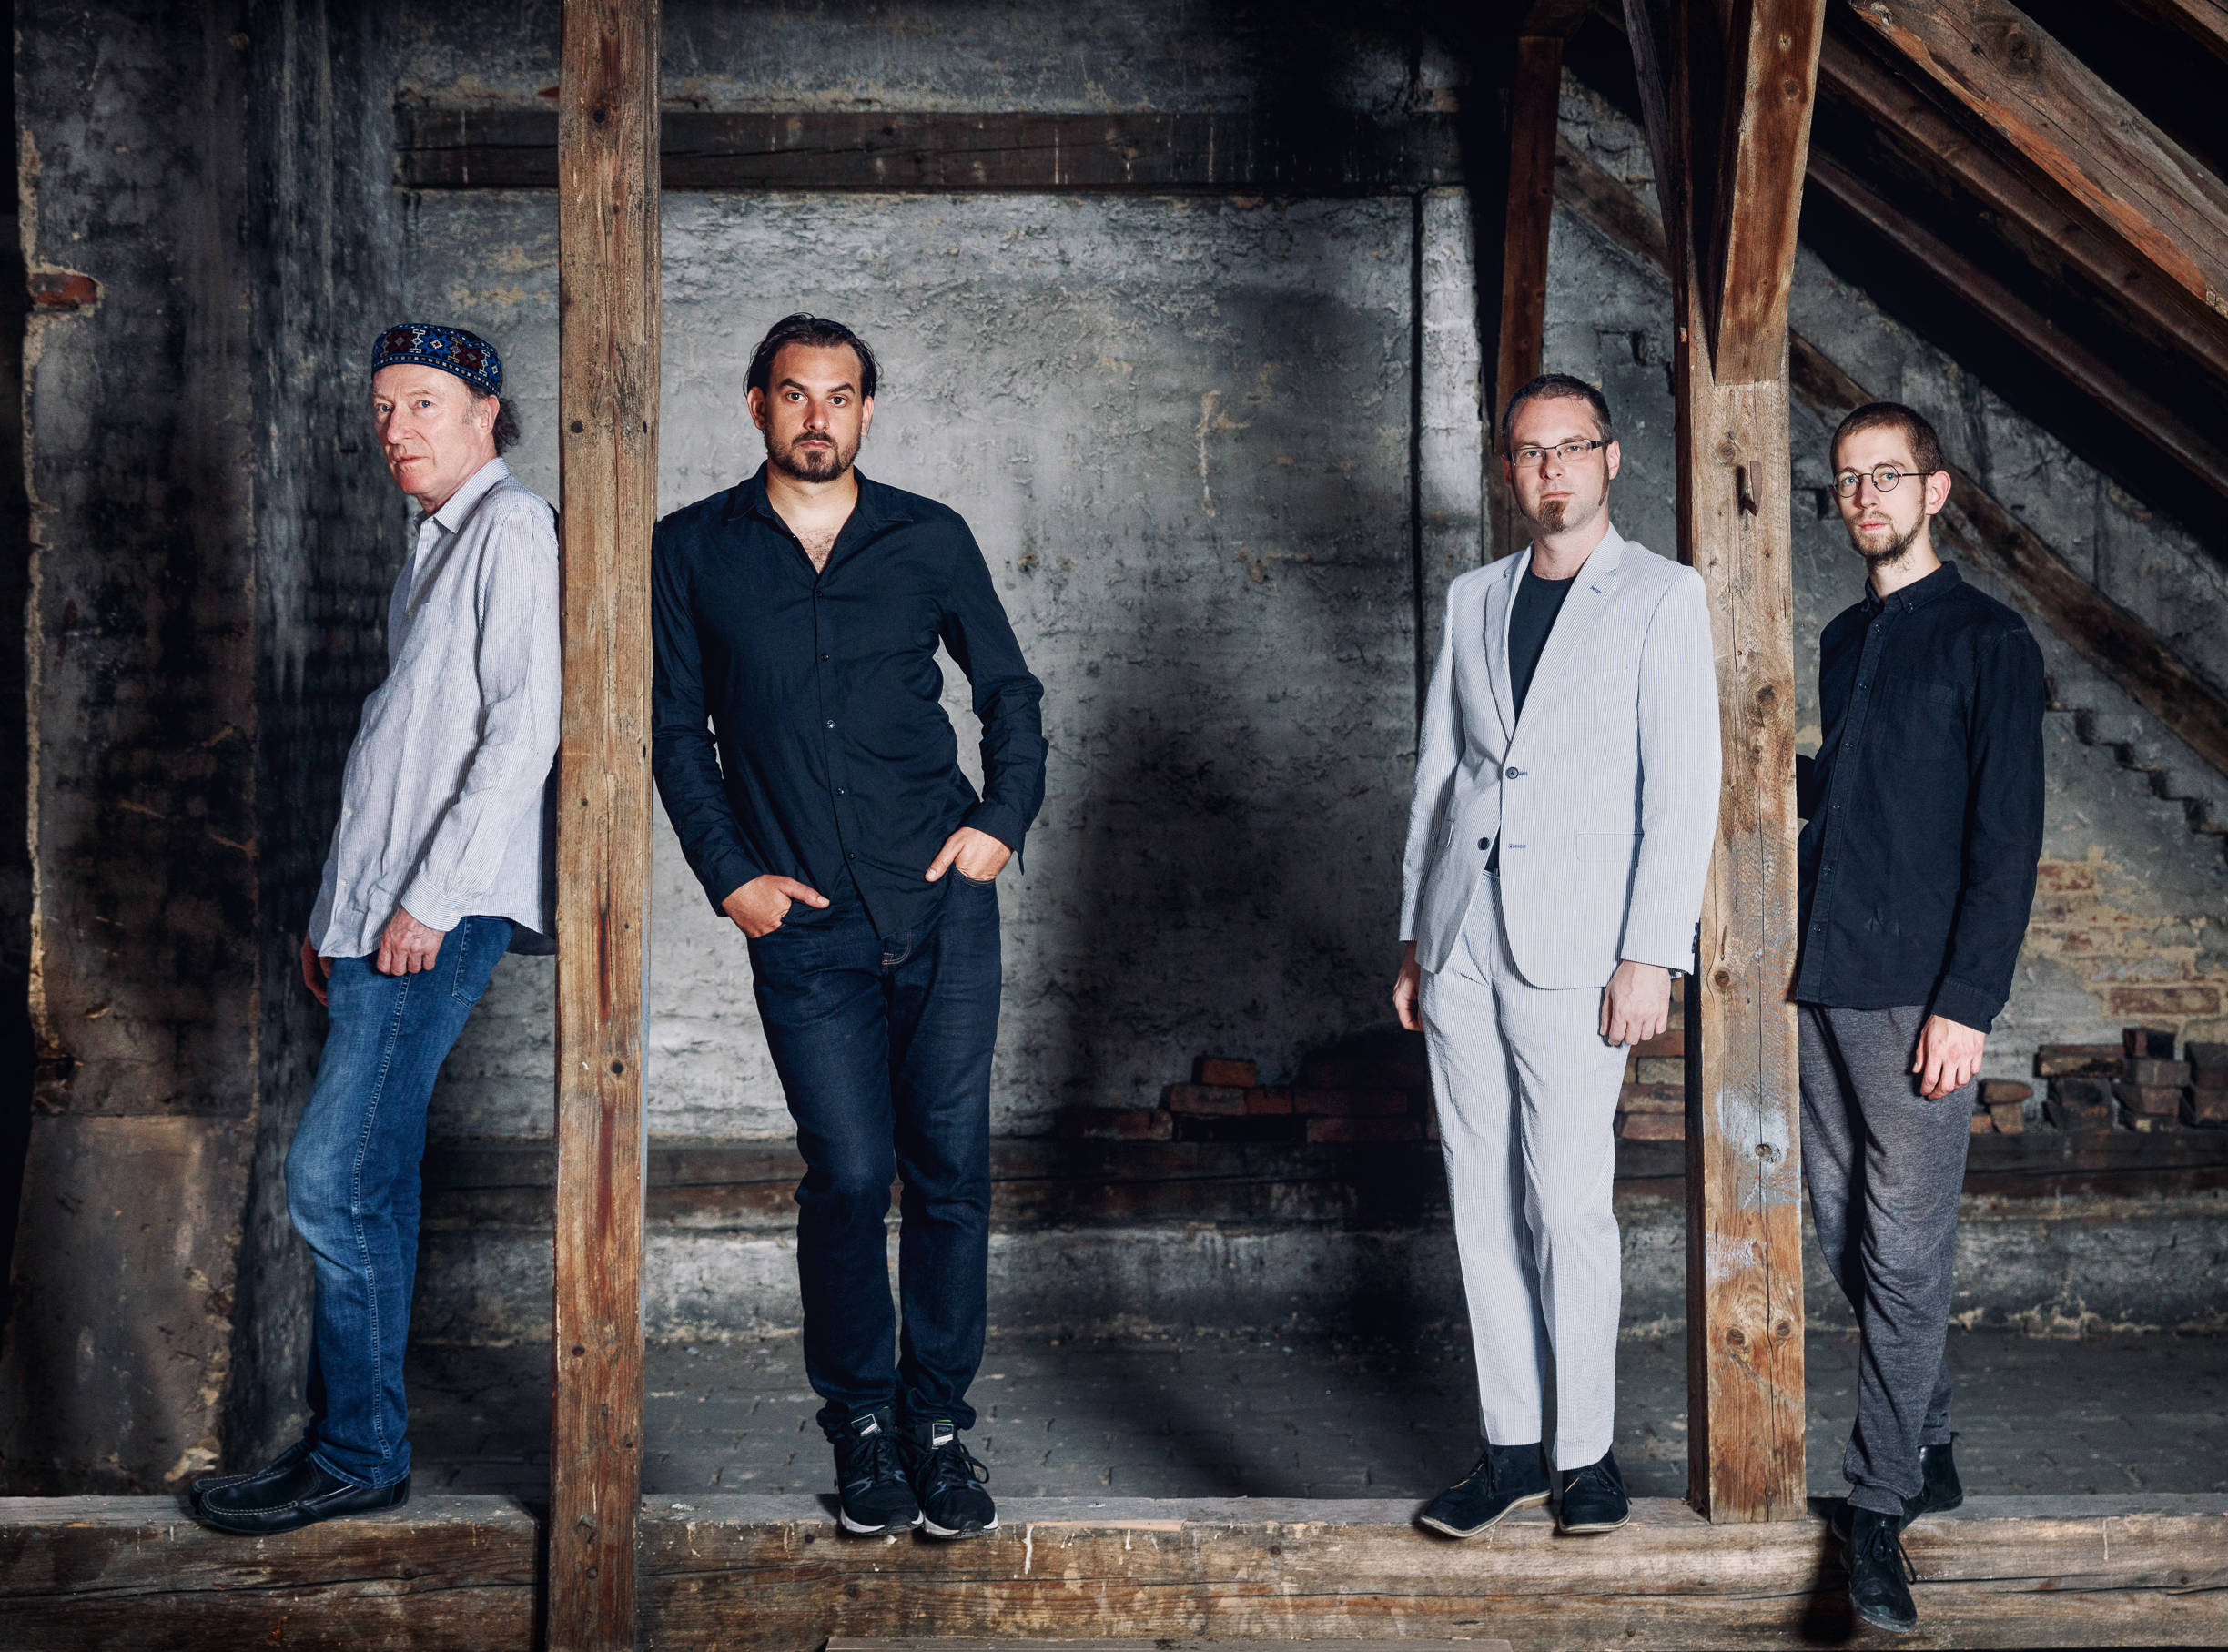 from left to right: Andi Schreibert (violin), Martin Bayer (guitar), Clemens Salesny (sax), Valentin Duit (drums). Photo credit: Maria Frodl, 2018